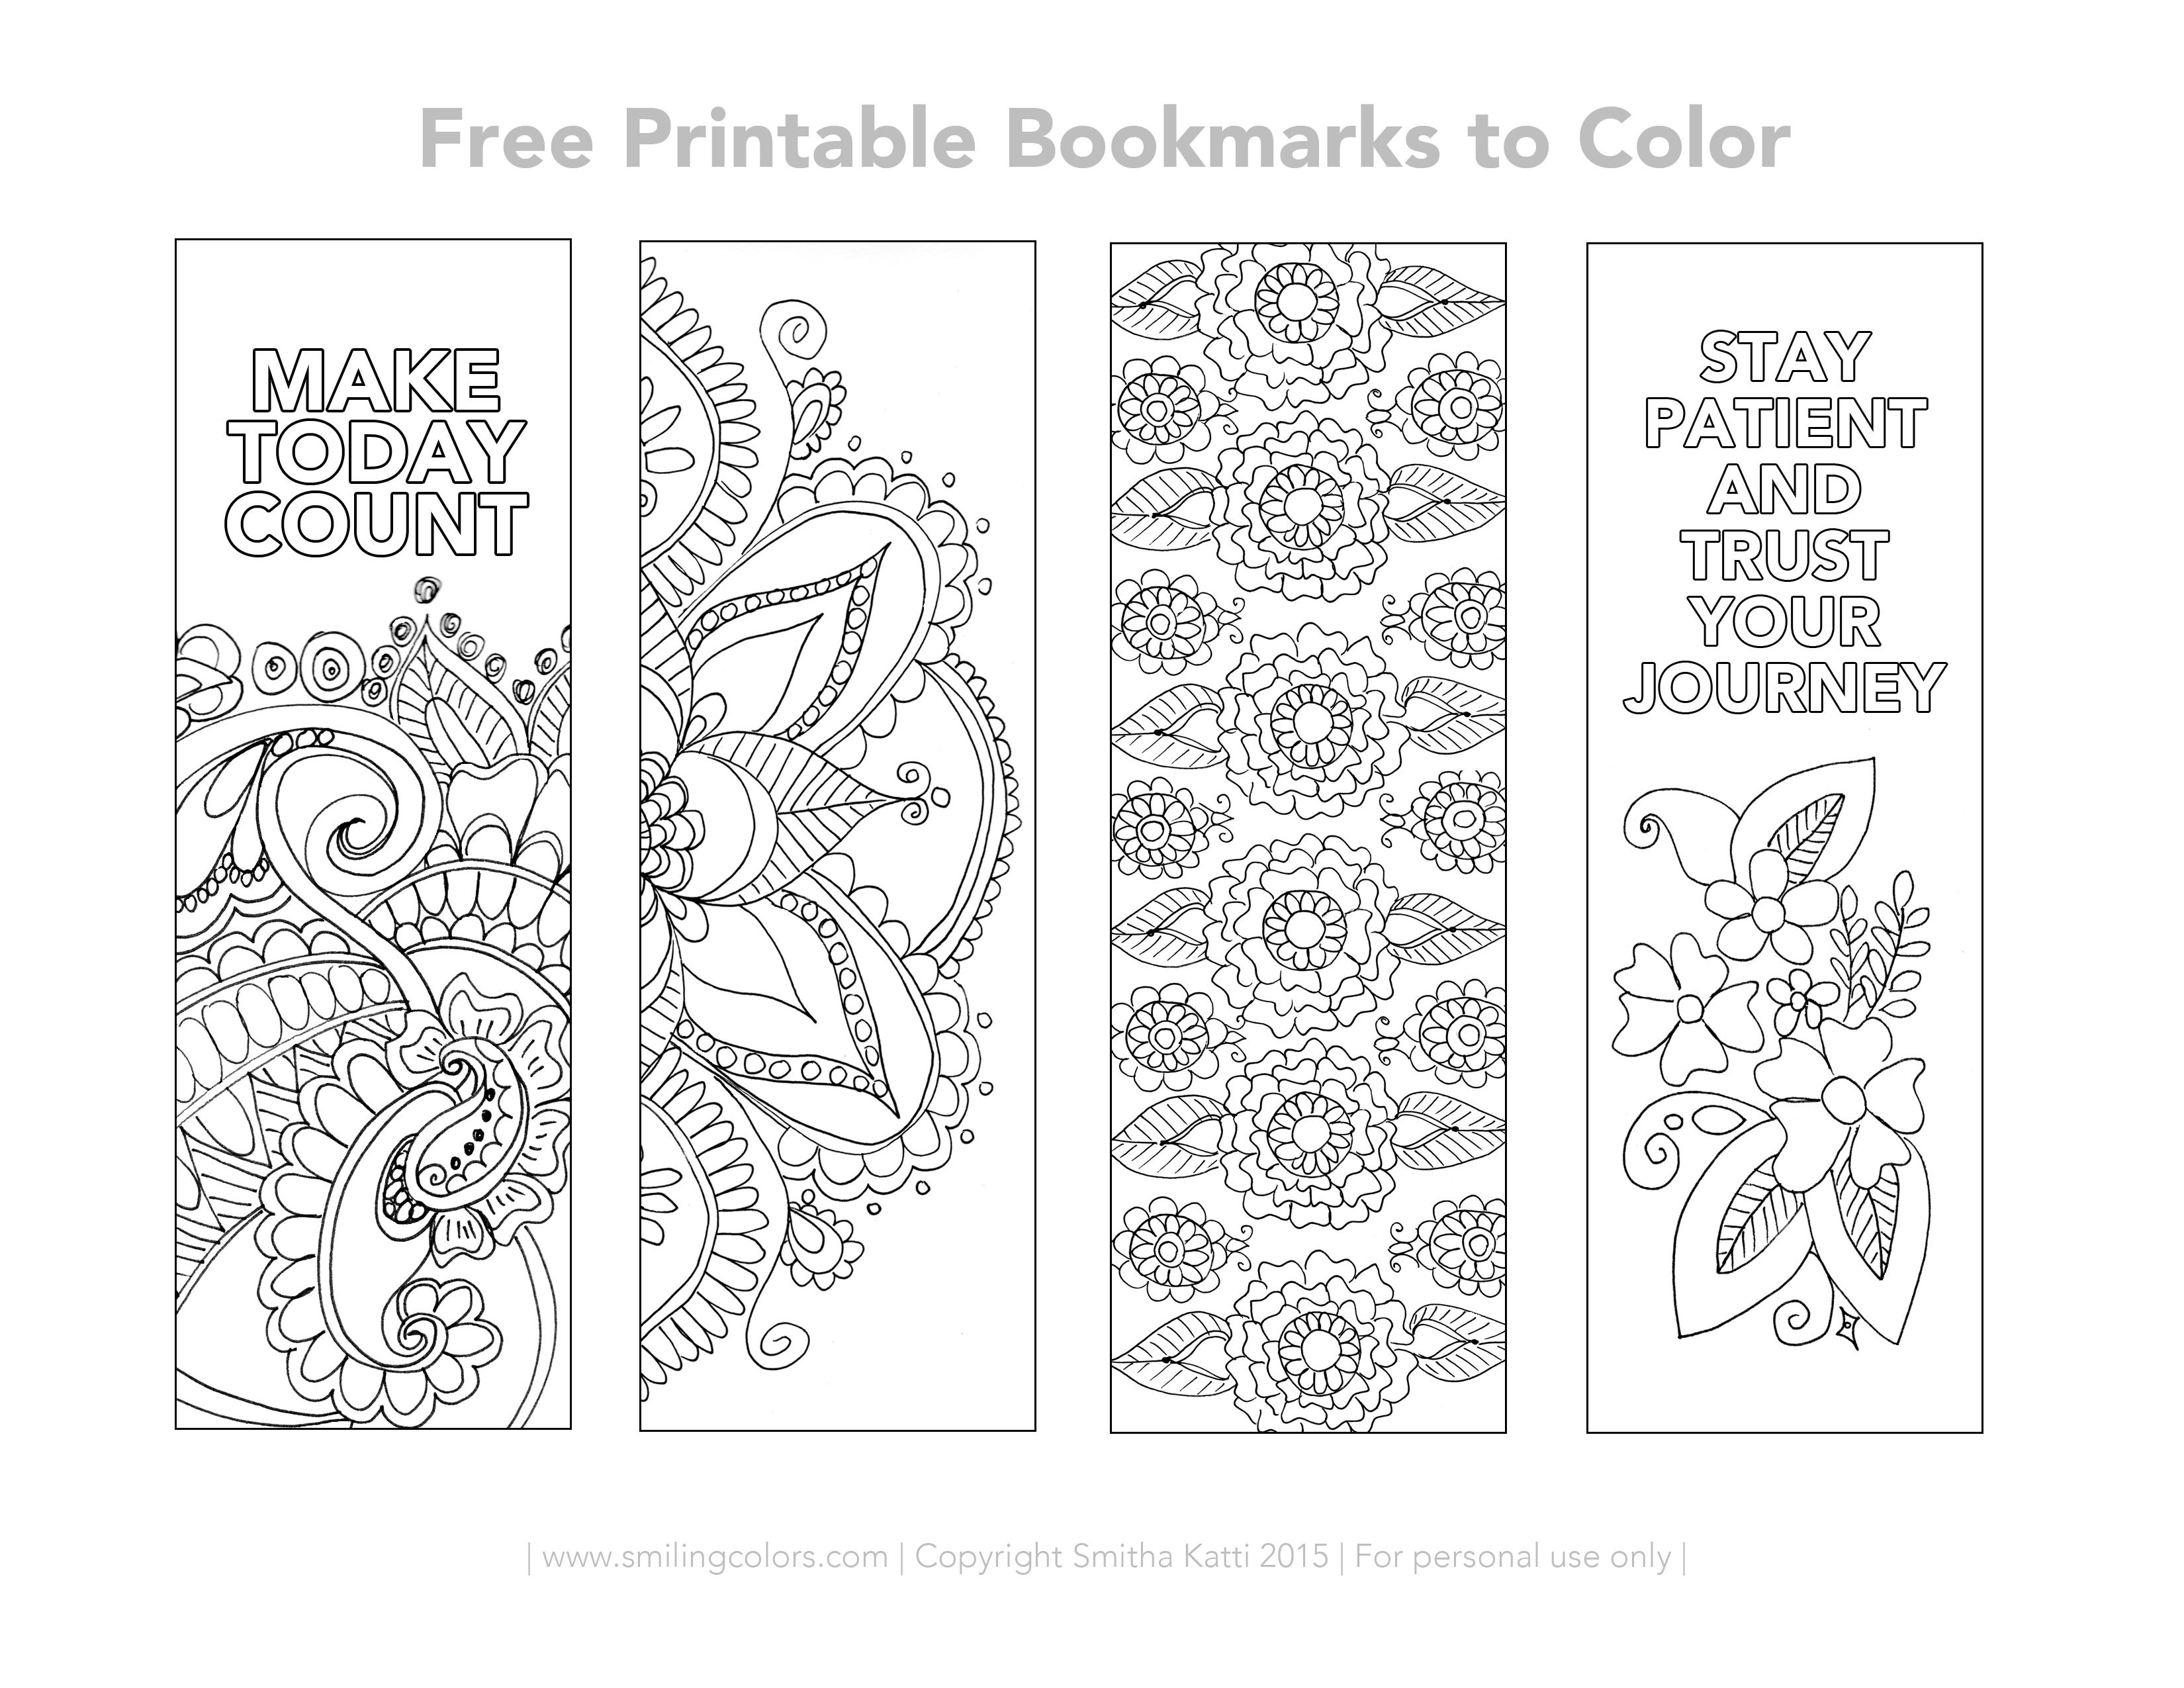 Free Printable Bookmarks To Color   Inspirational   Free Printable - Free Printable Christmas Bookmarks To Color